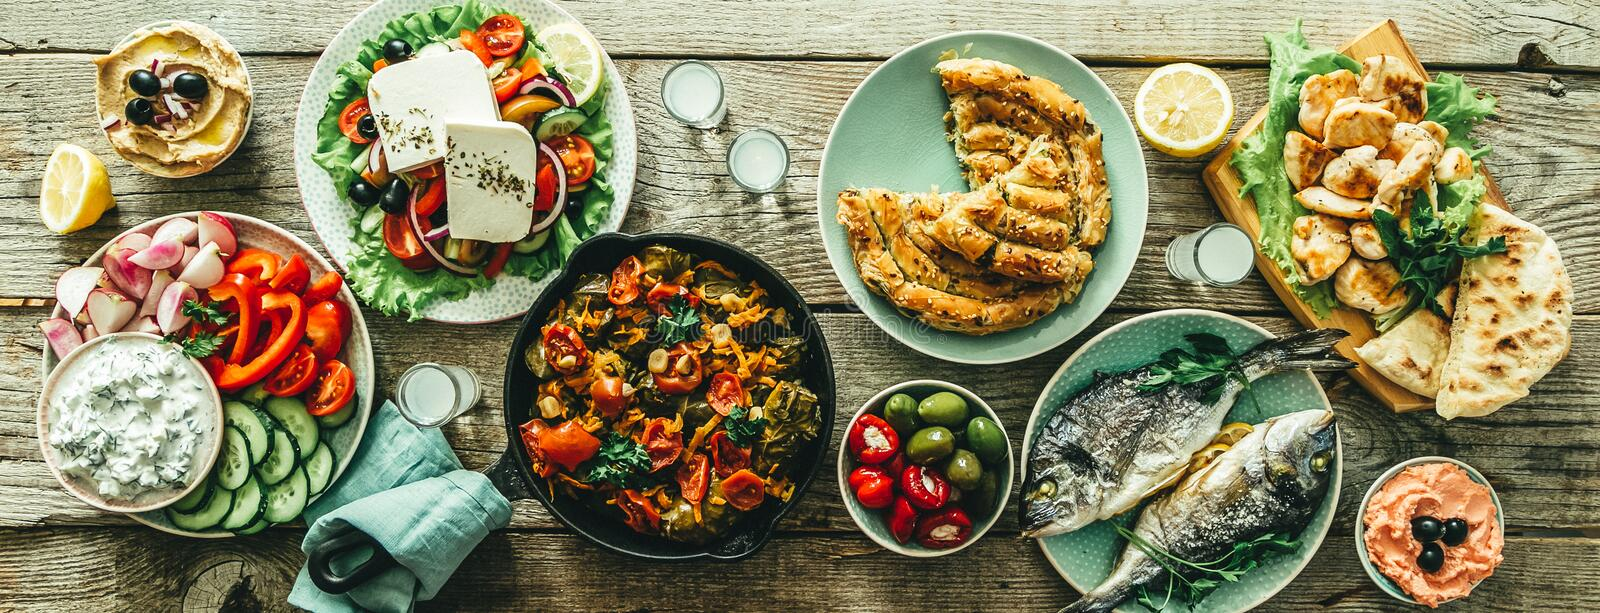 Selection of traditional greek food - salad, meze, pie, fish, tzatziki, dolma on wood background. Top view stock photography